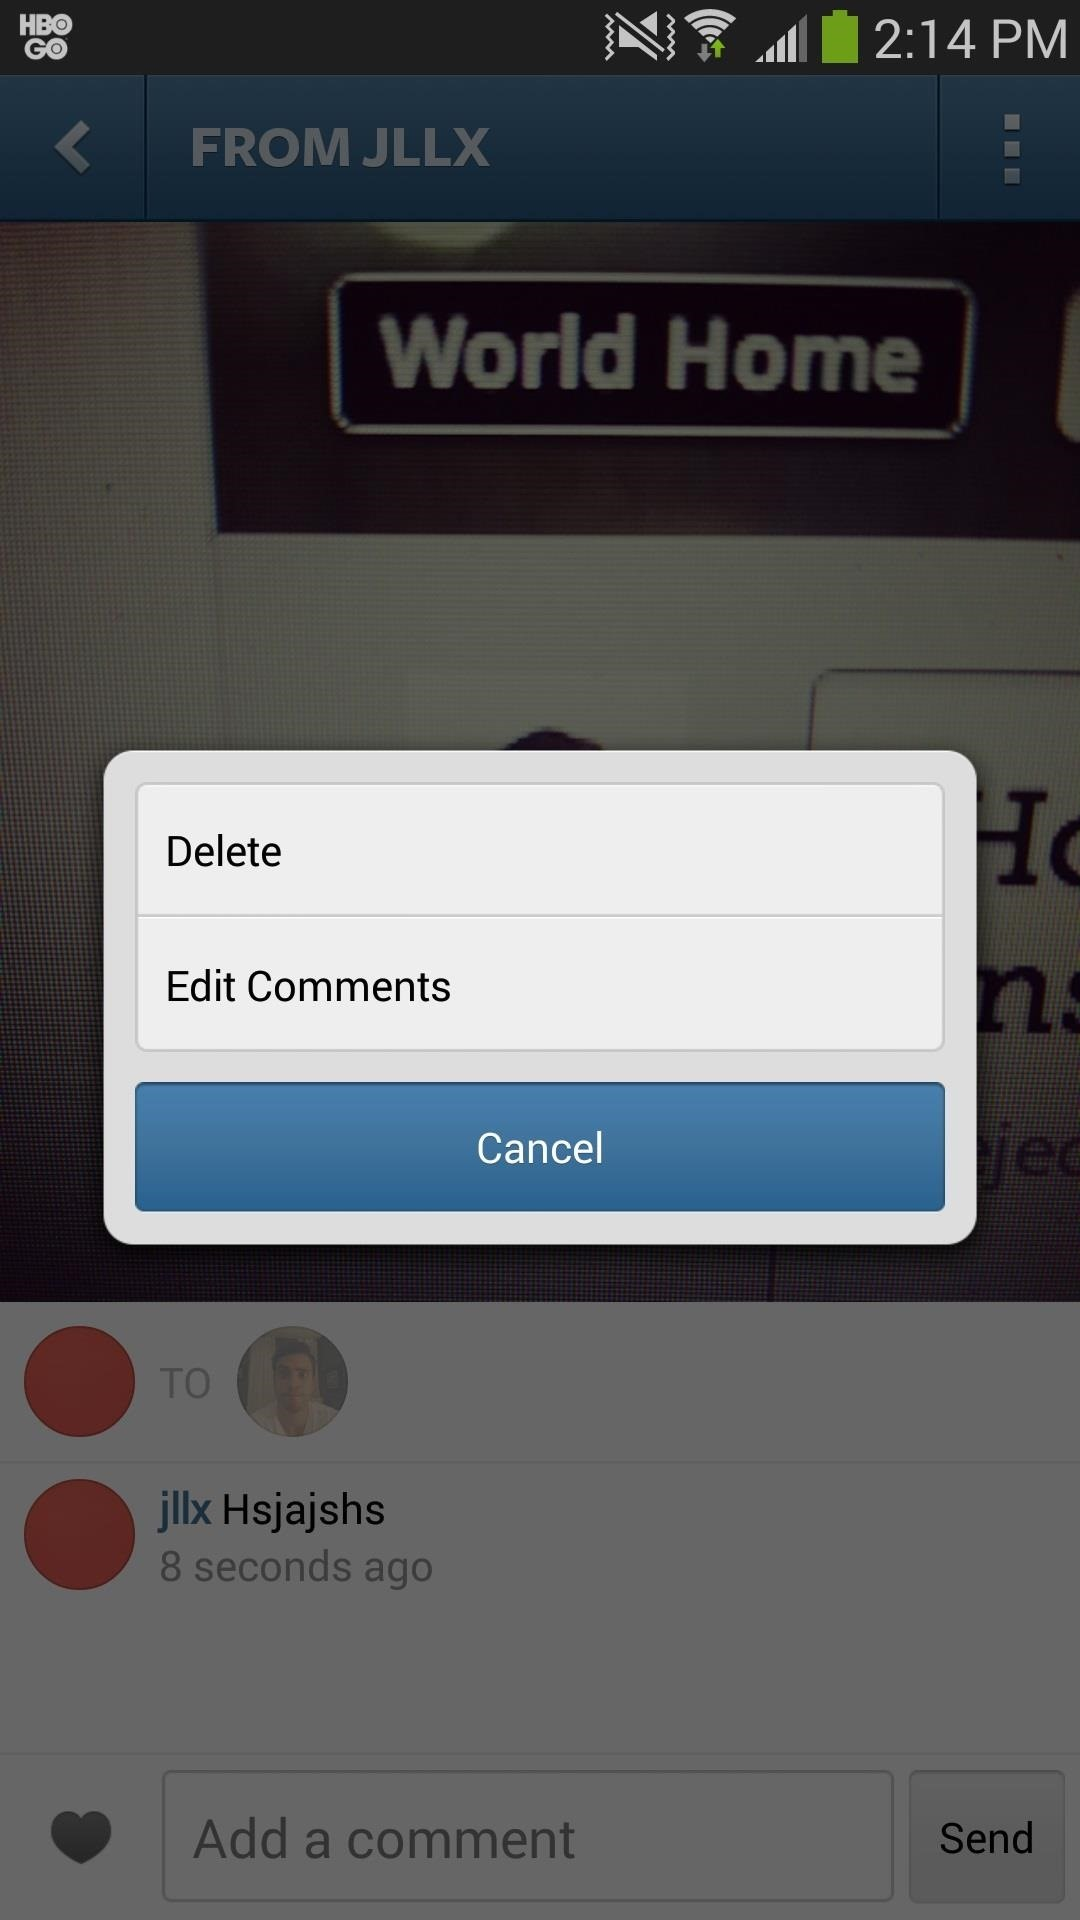 How to Take Back the Photos & Videos You Send via Instagram Direct